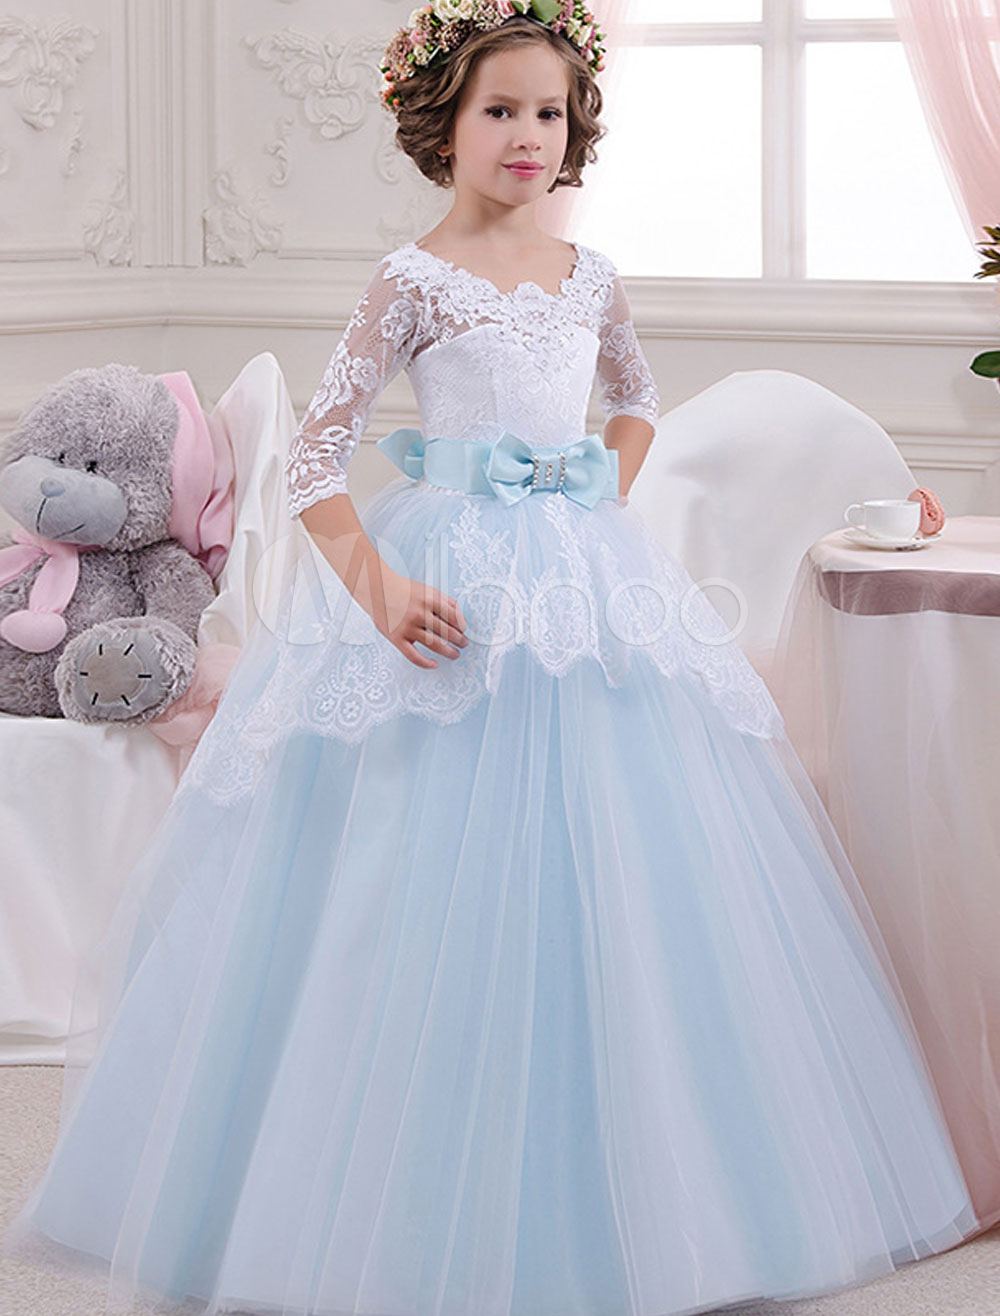 Princess Flower Girl Dresses Baby Blue Lace Bow Sash Rhinestones Floor Length Kids Pageant Party Dress